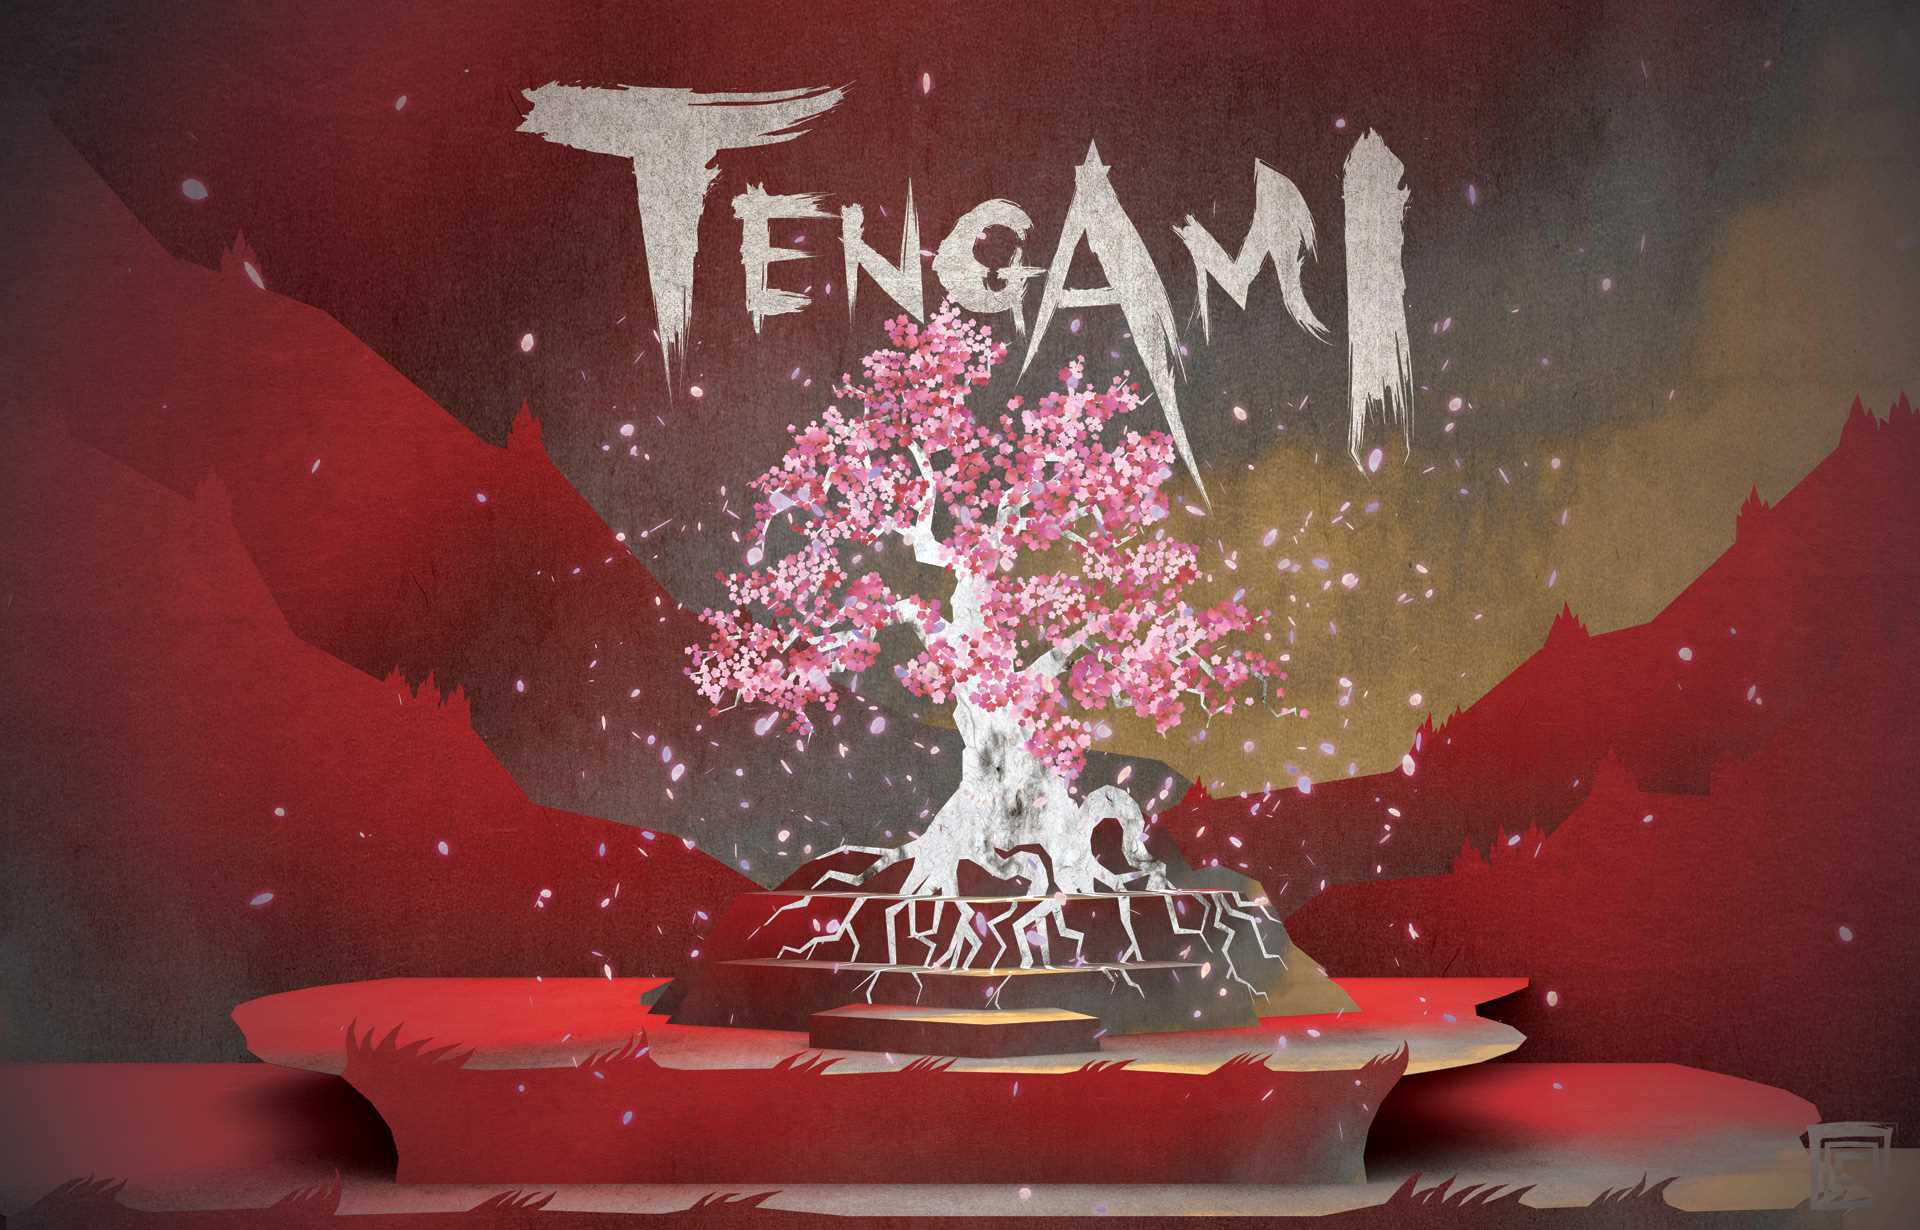 Tengami (Steam Key region free)